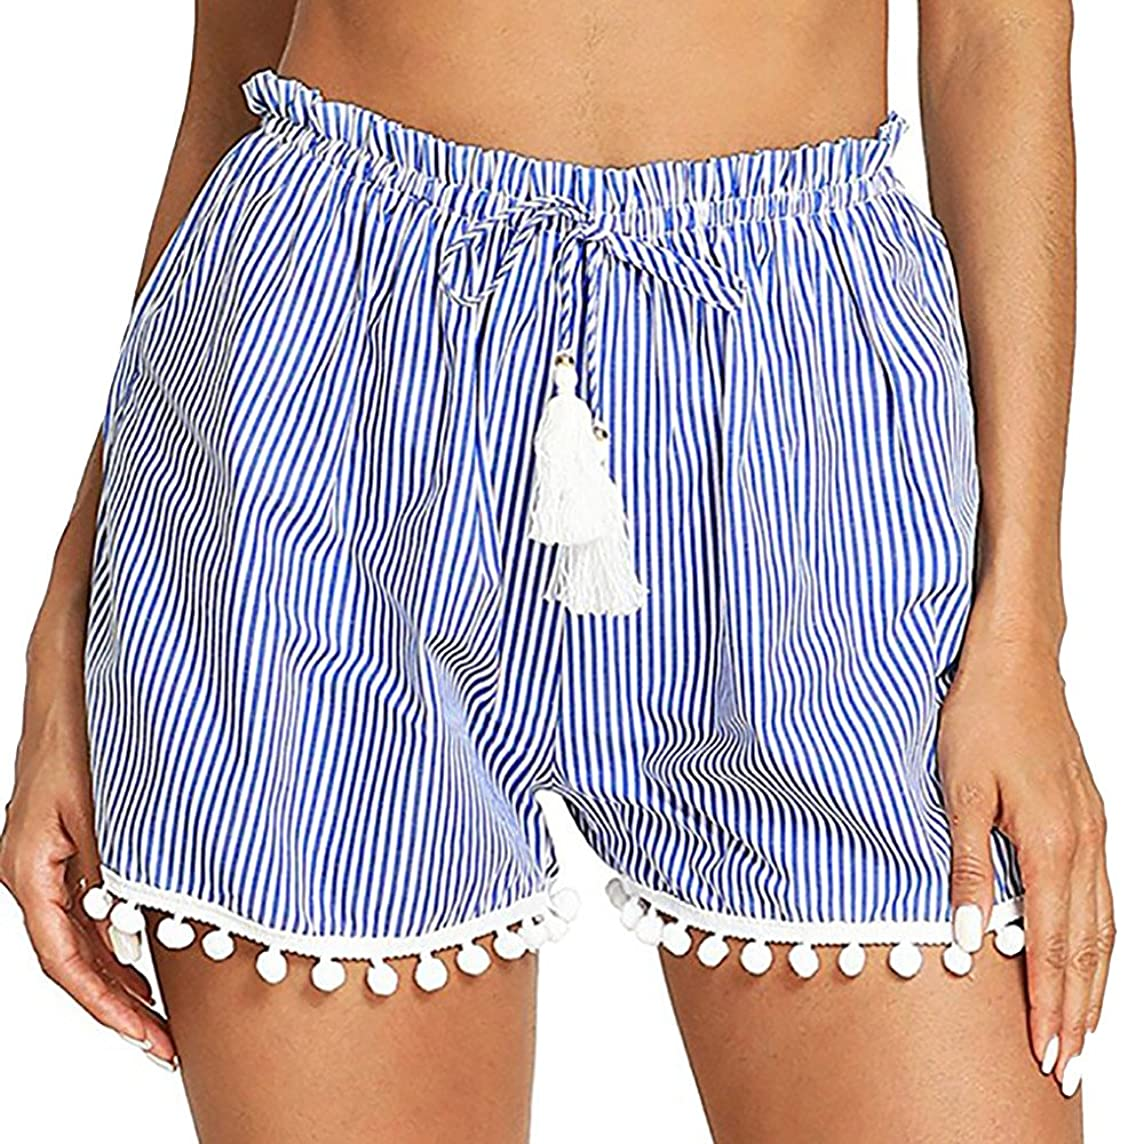 Women Striped Stretch Waist Pants Tassel Tie Hem Shorts Comfortable Pajamas Yoga Sports Running Trouser Beach Bottoms